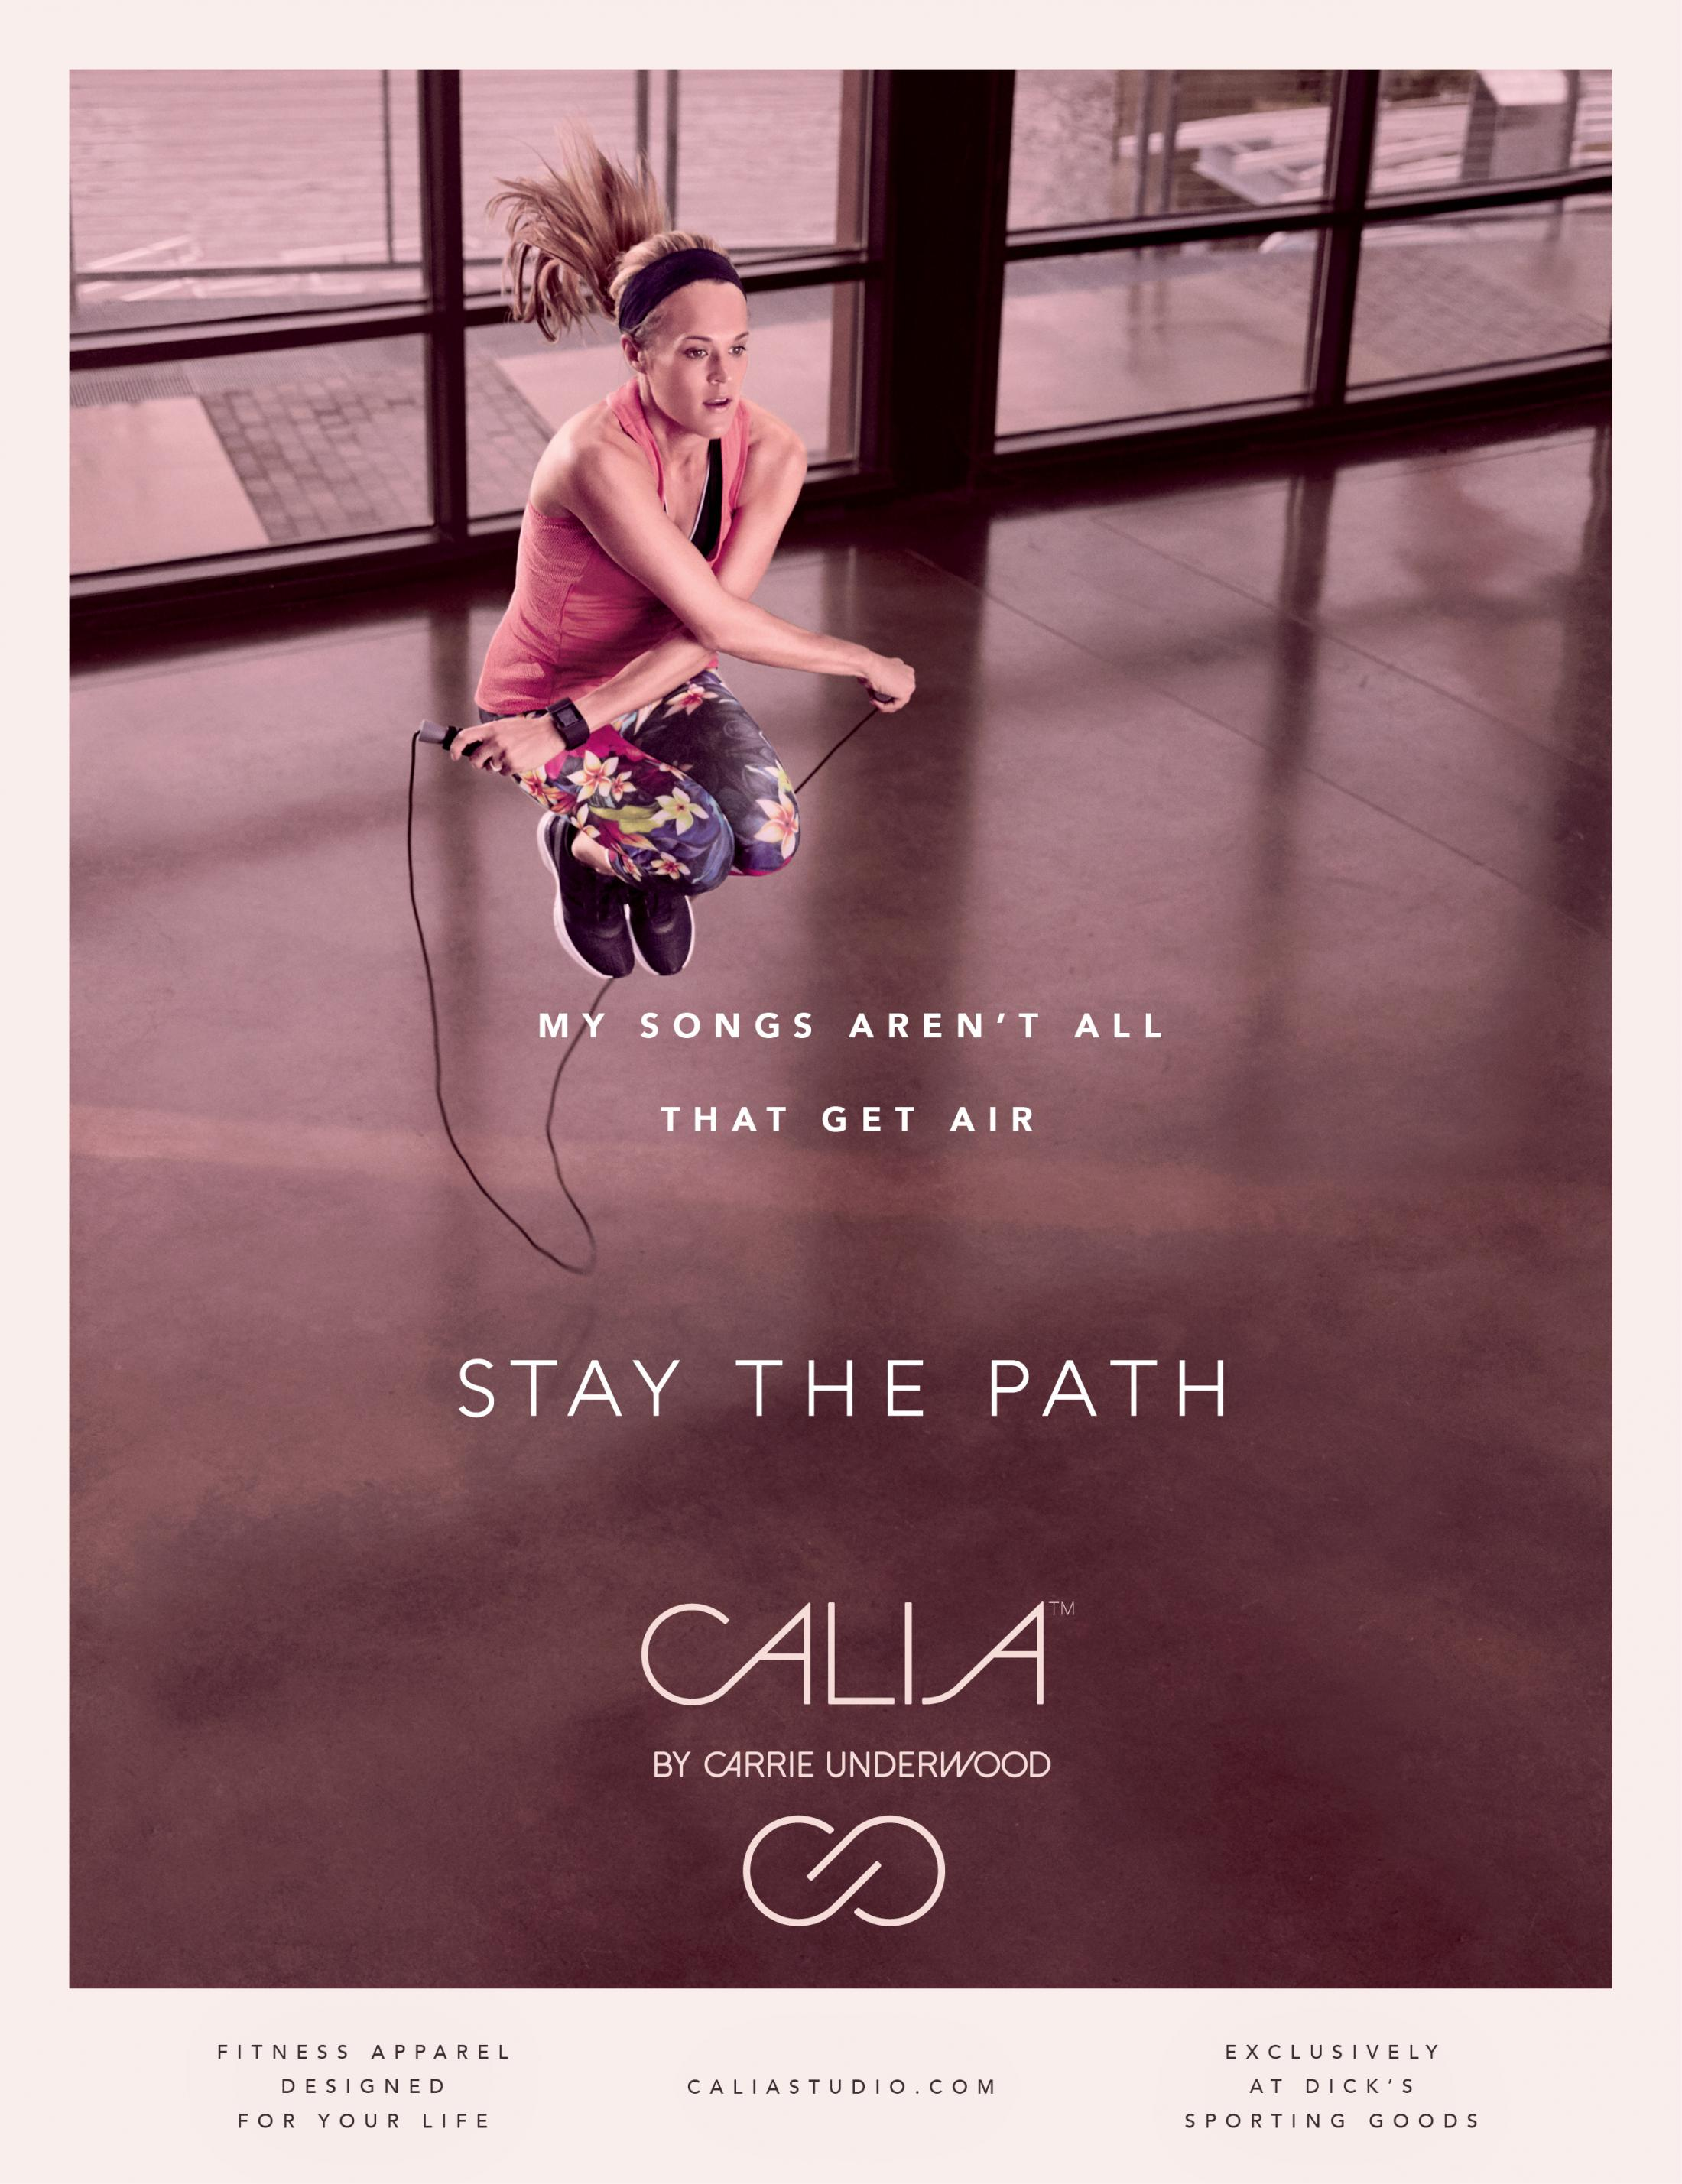 Thumbnail for CALIA by Carrie Underwood - Stay The Path